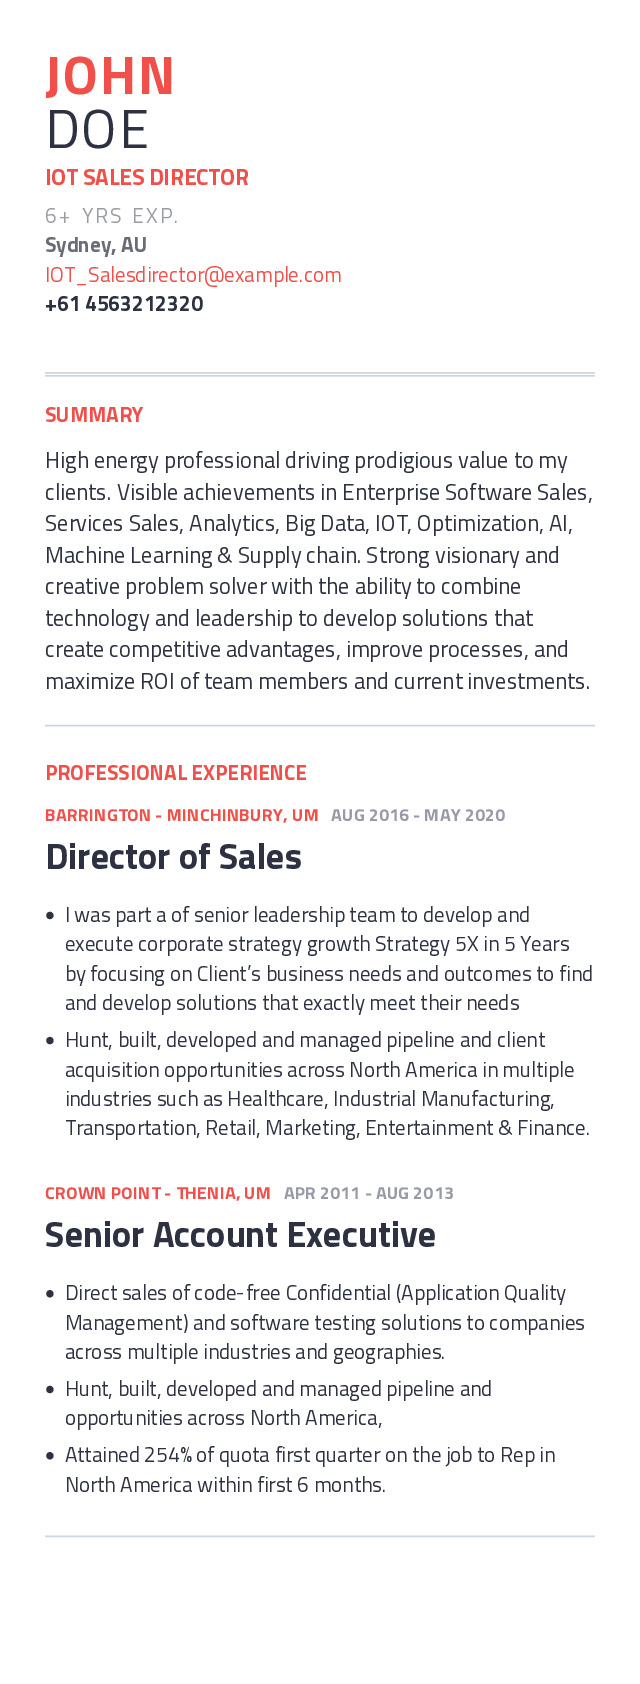 IOT Sales Director Mobile Resume Example